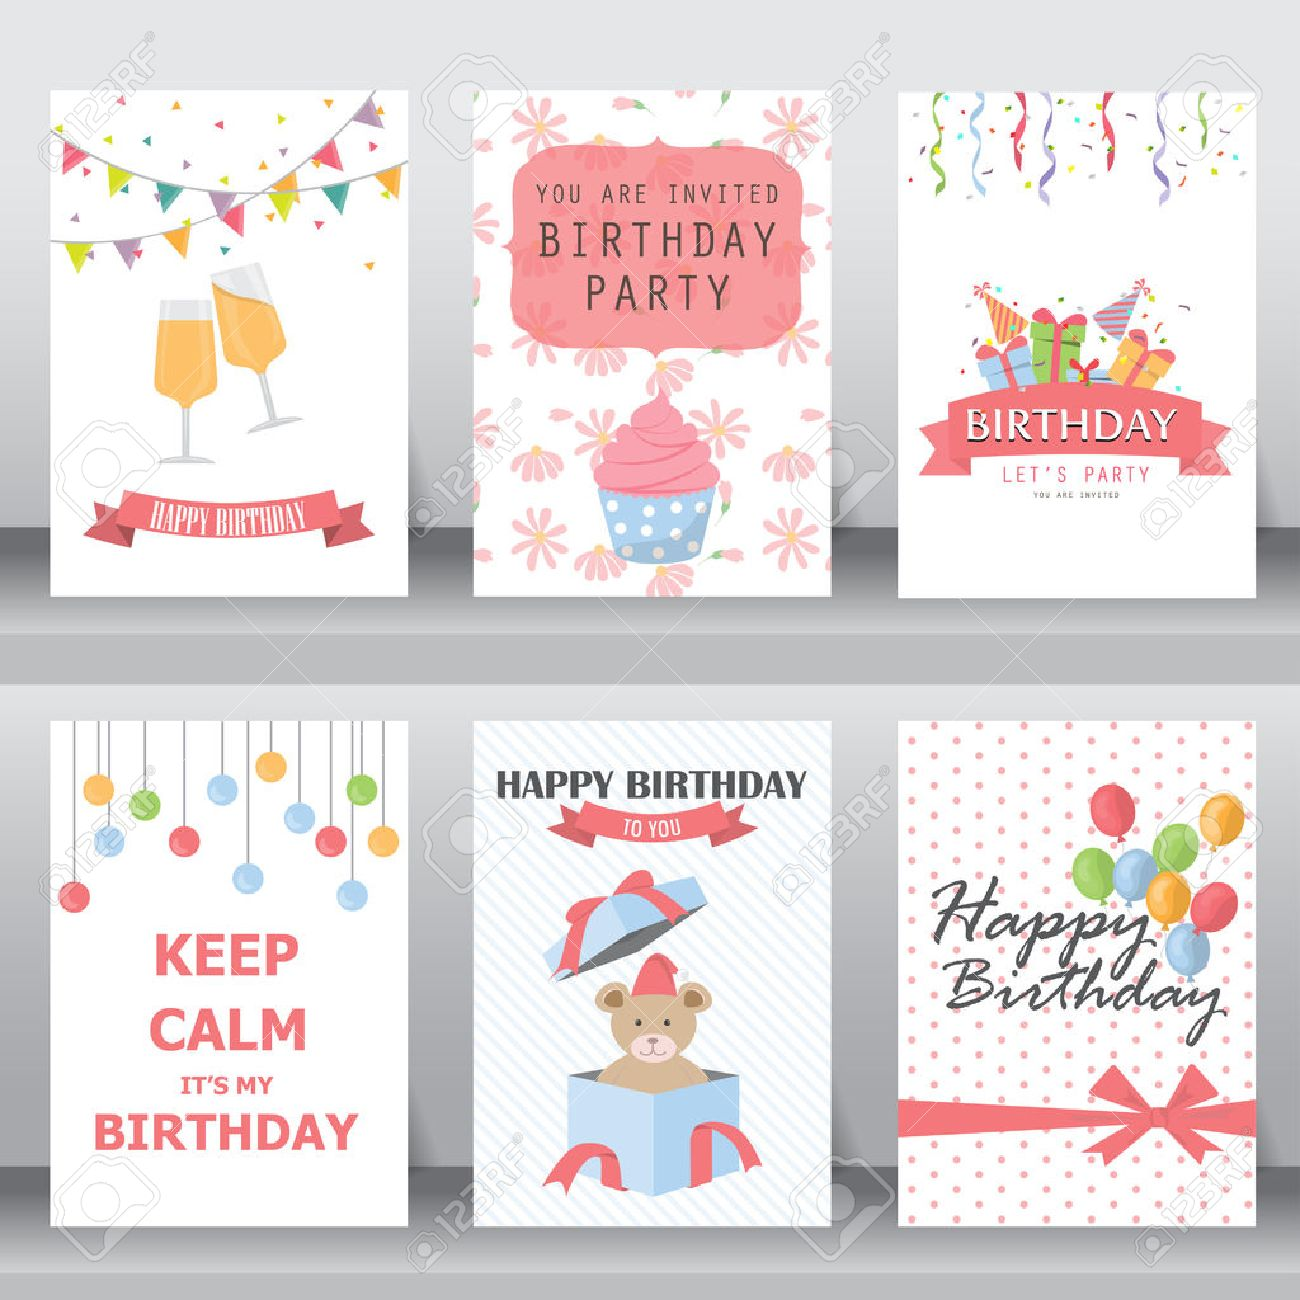 happy birthday, holiday, christmas greeting and invitation card. there are balloon, gift boxes, confetti, cup cake, teddy bear. layout template in A4 size. vector illustration - 53611468